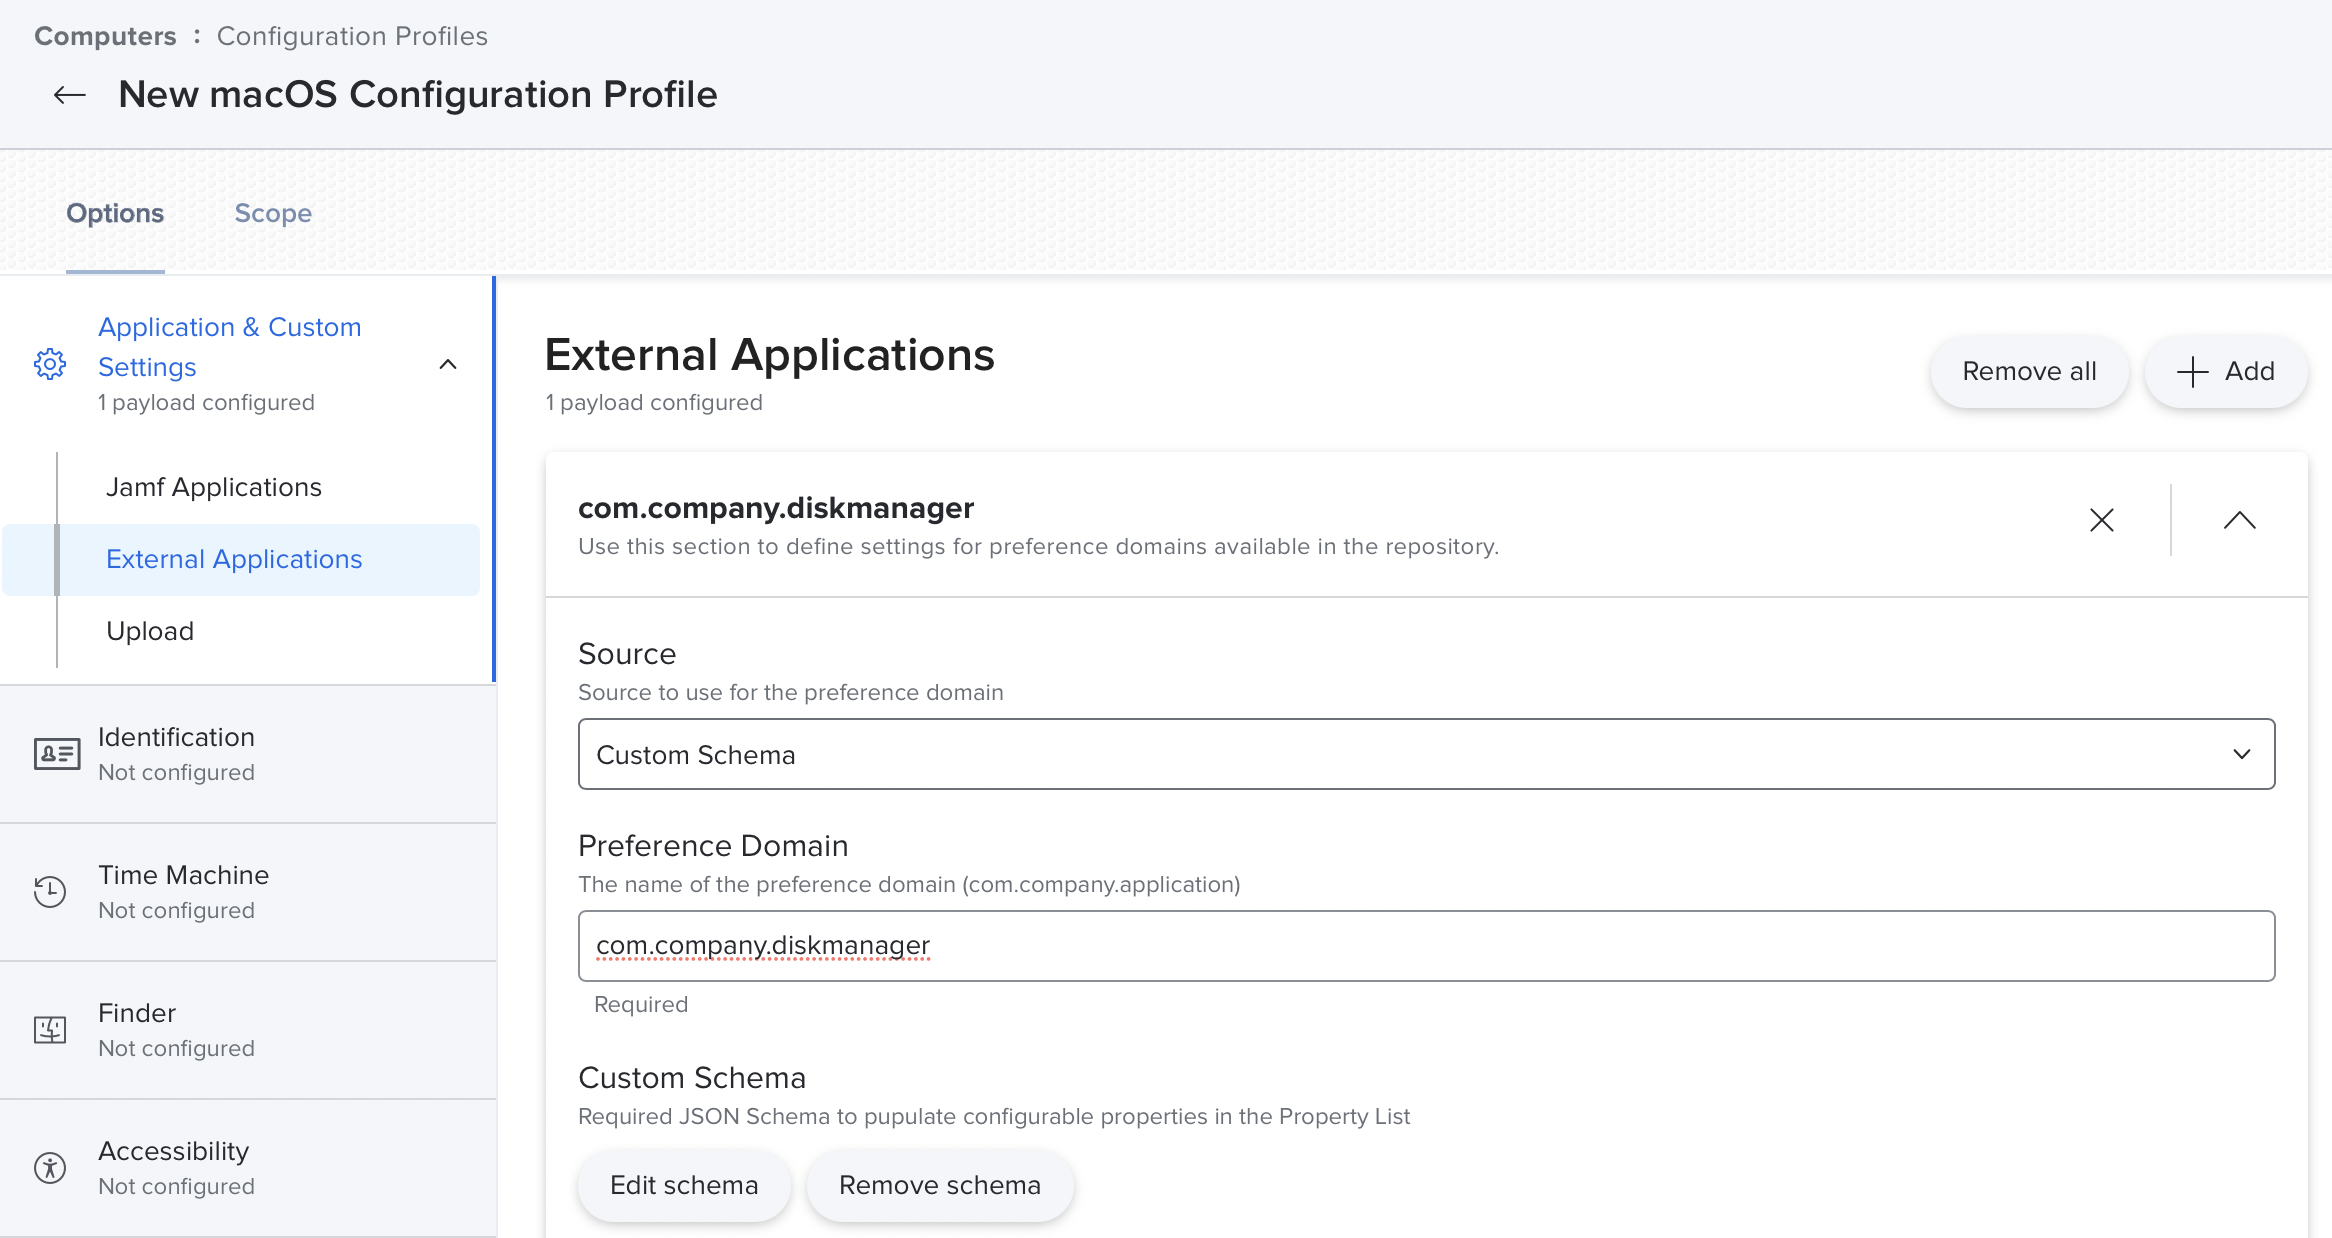 Specify the External Applications preference domain.